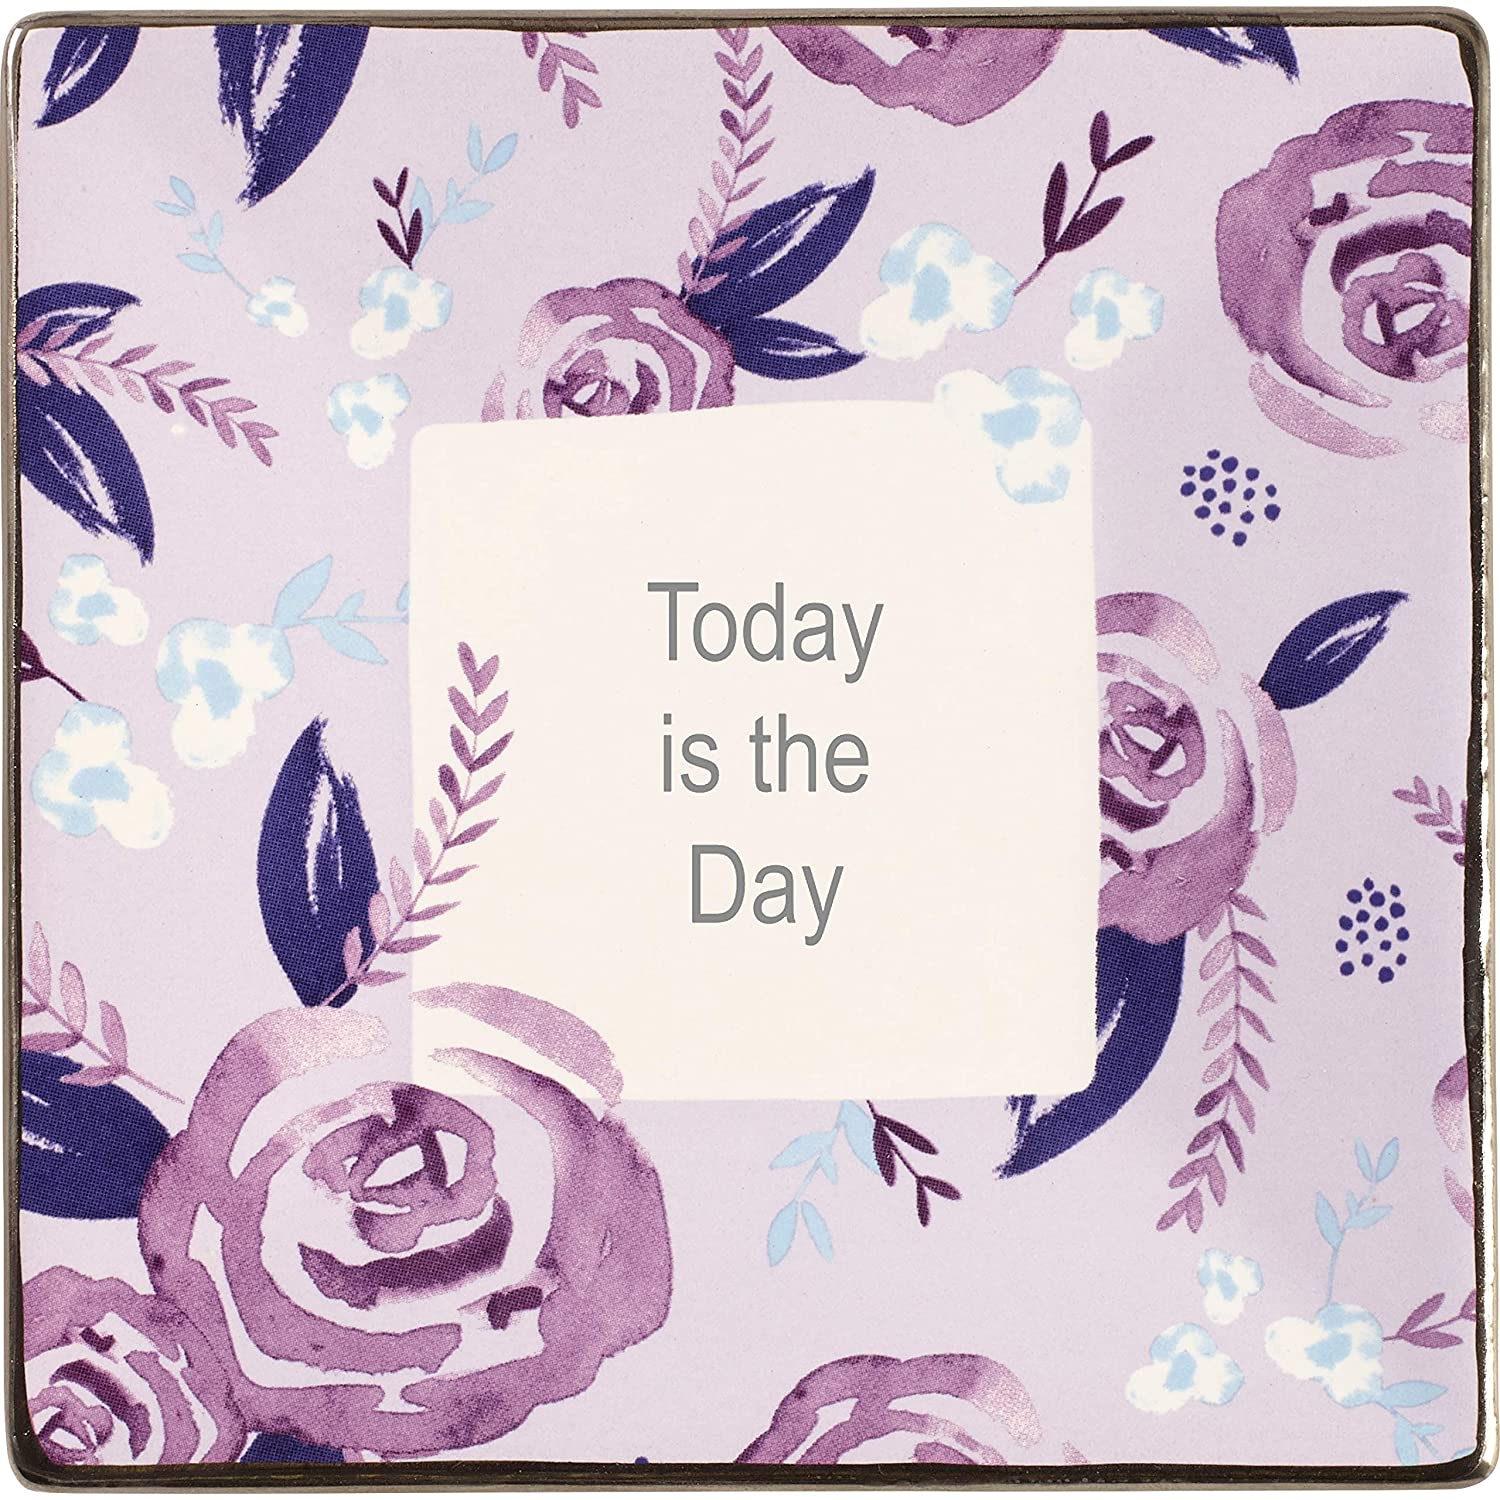 Precious Moments Memories Are Made In Moments Like This Floral Ceramic Photo Frame 182414